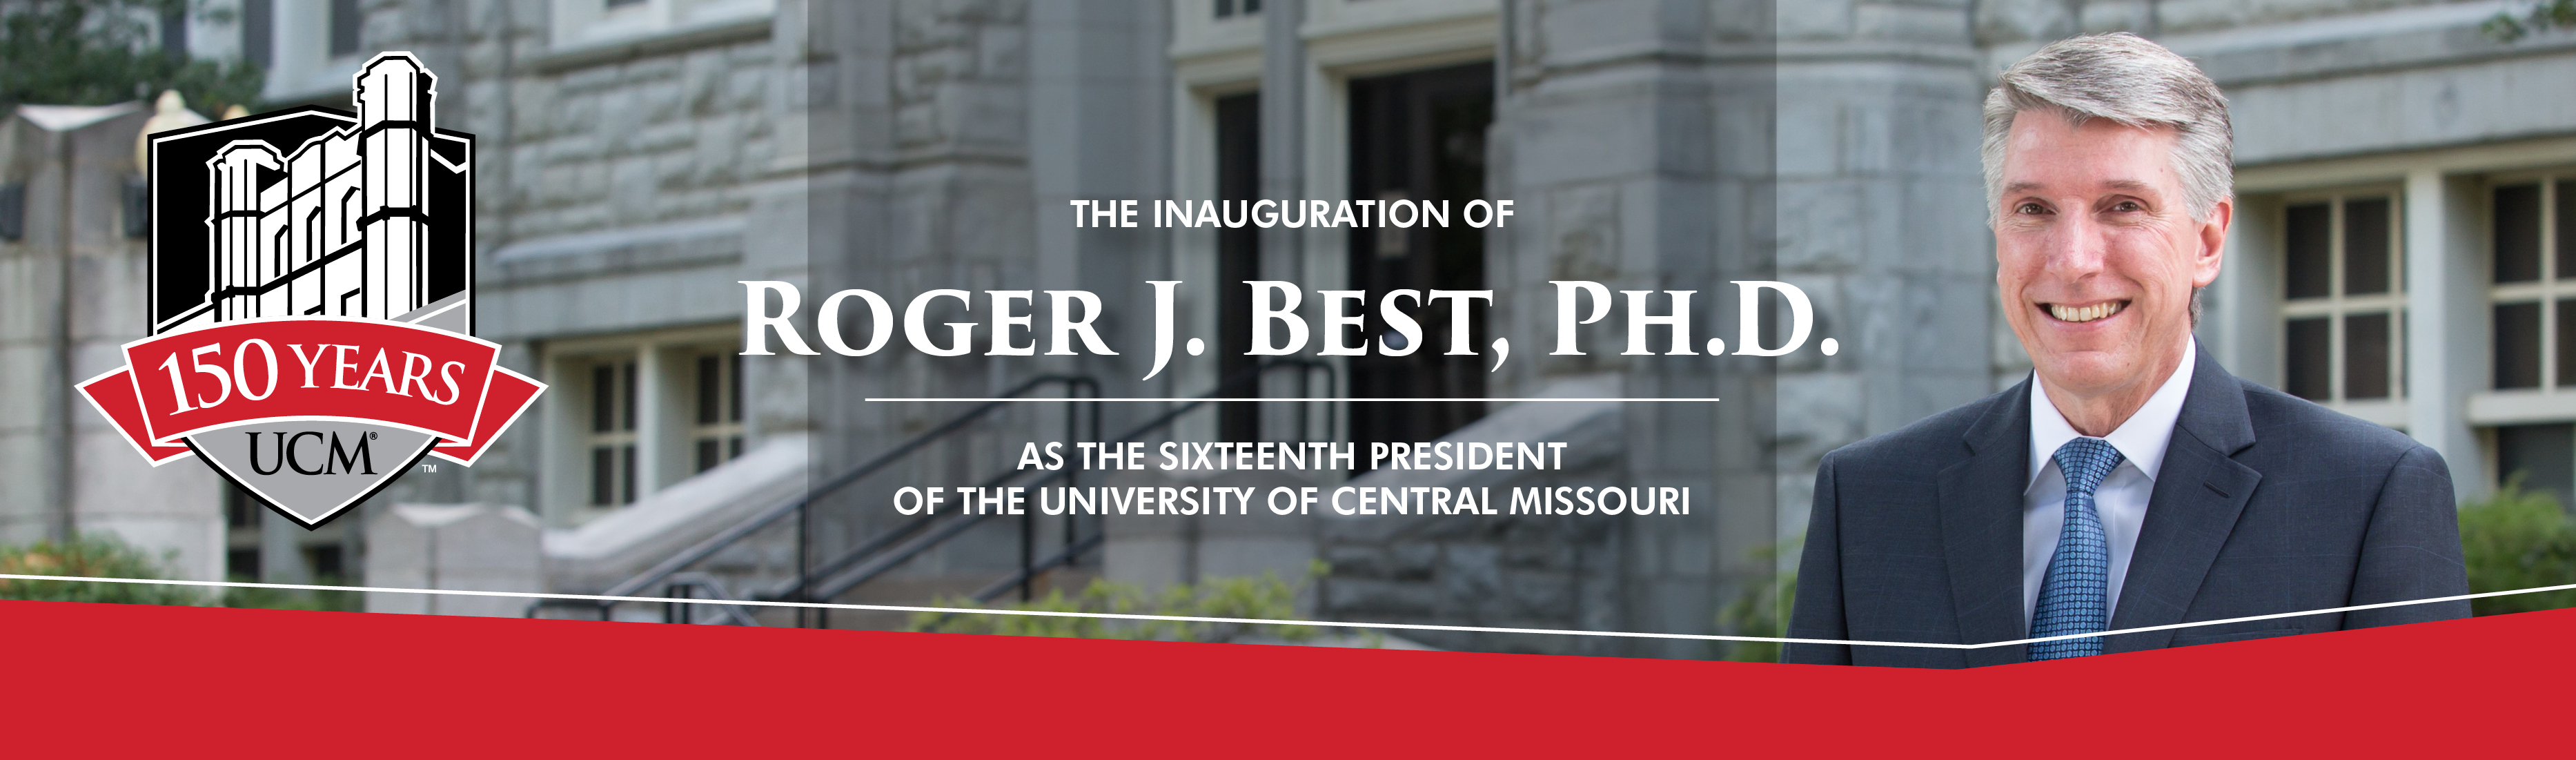 Inauguration of President Roger Best